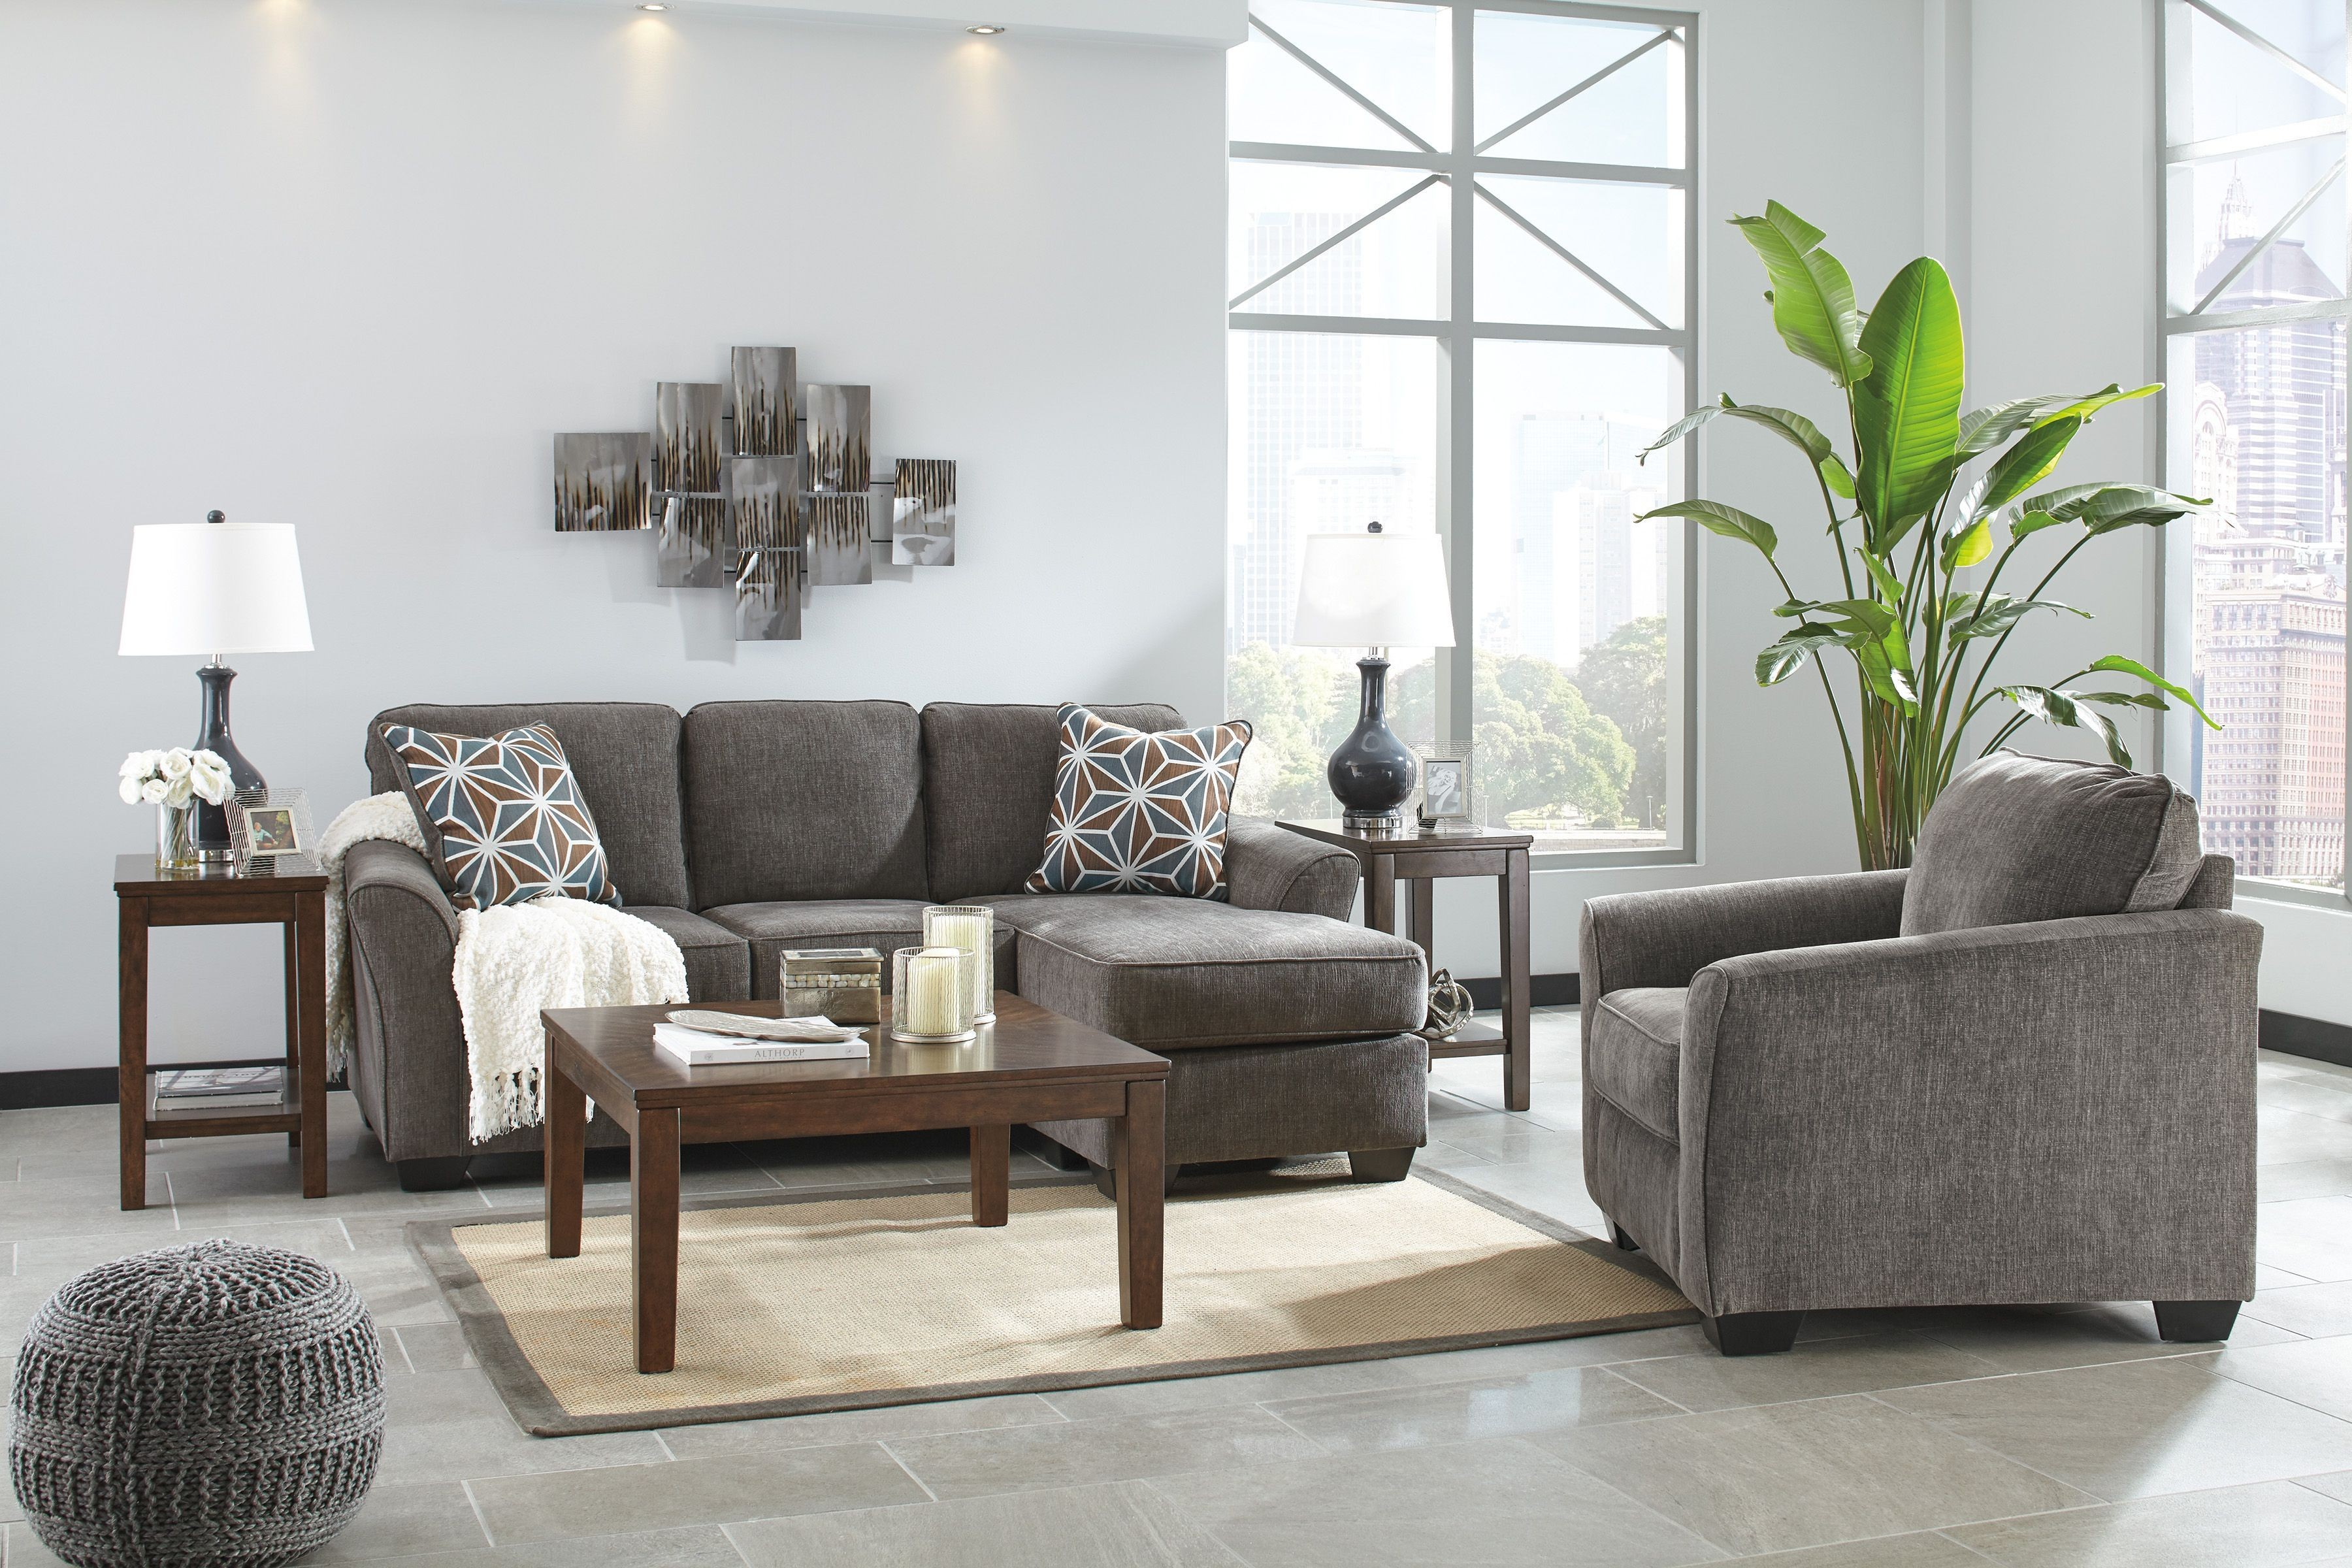 Marlinton Brown 3 Piece Occasional Table Set T052 13 Ashley